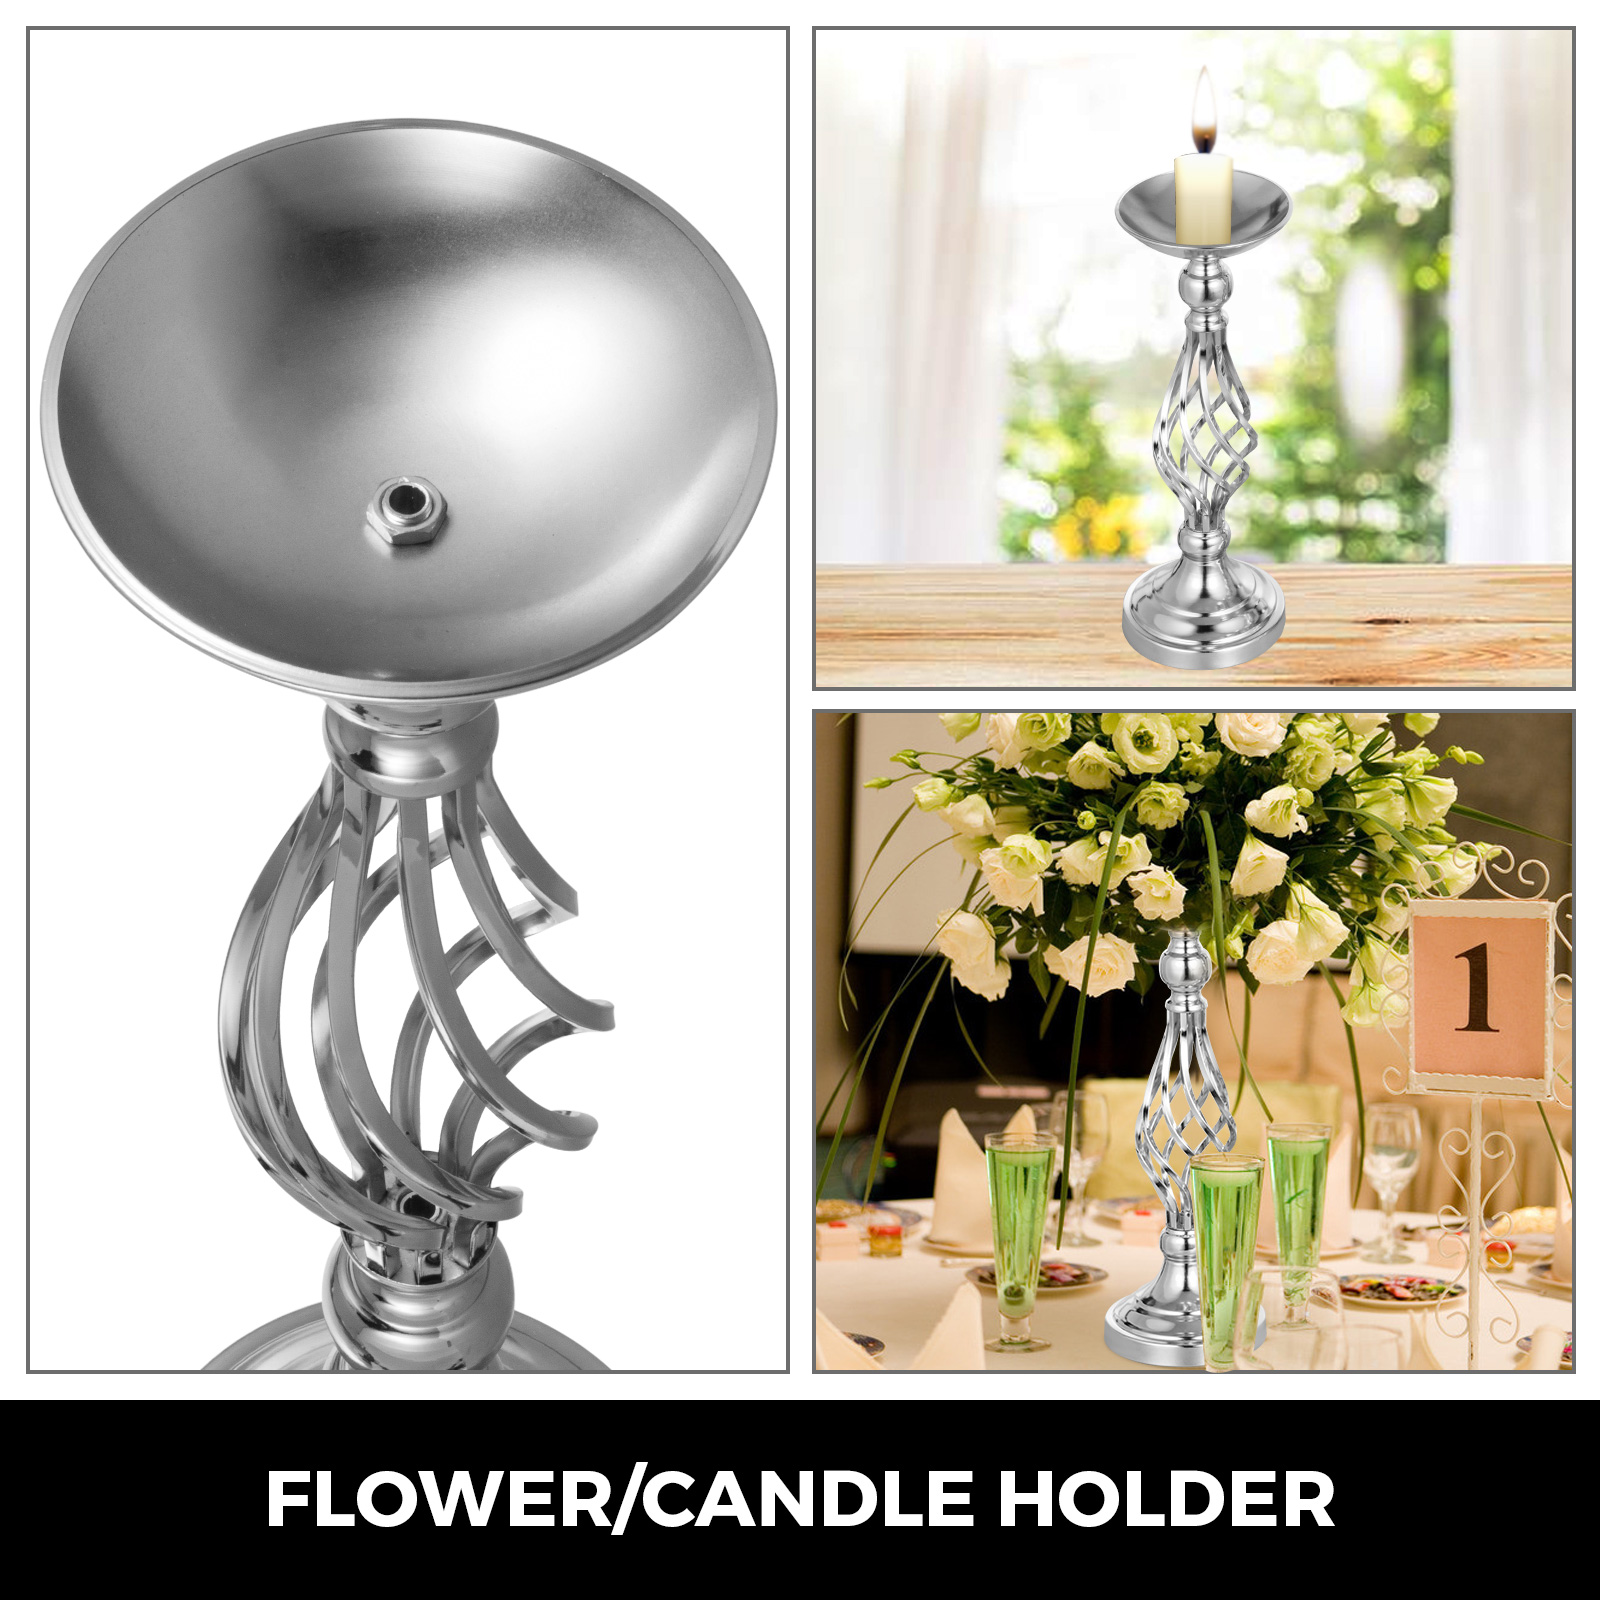 Flower-Rack-for-Wedding-Metal-Candle-Stand-4-11pcs-Centerpiece-Flower-Vase thumbnail 39